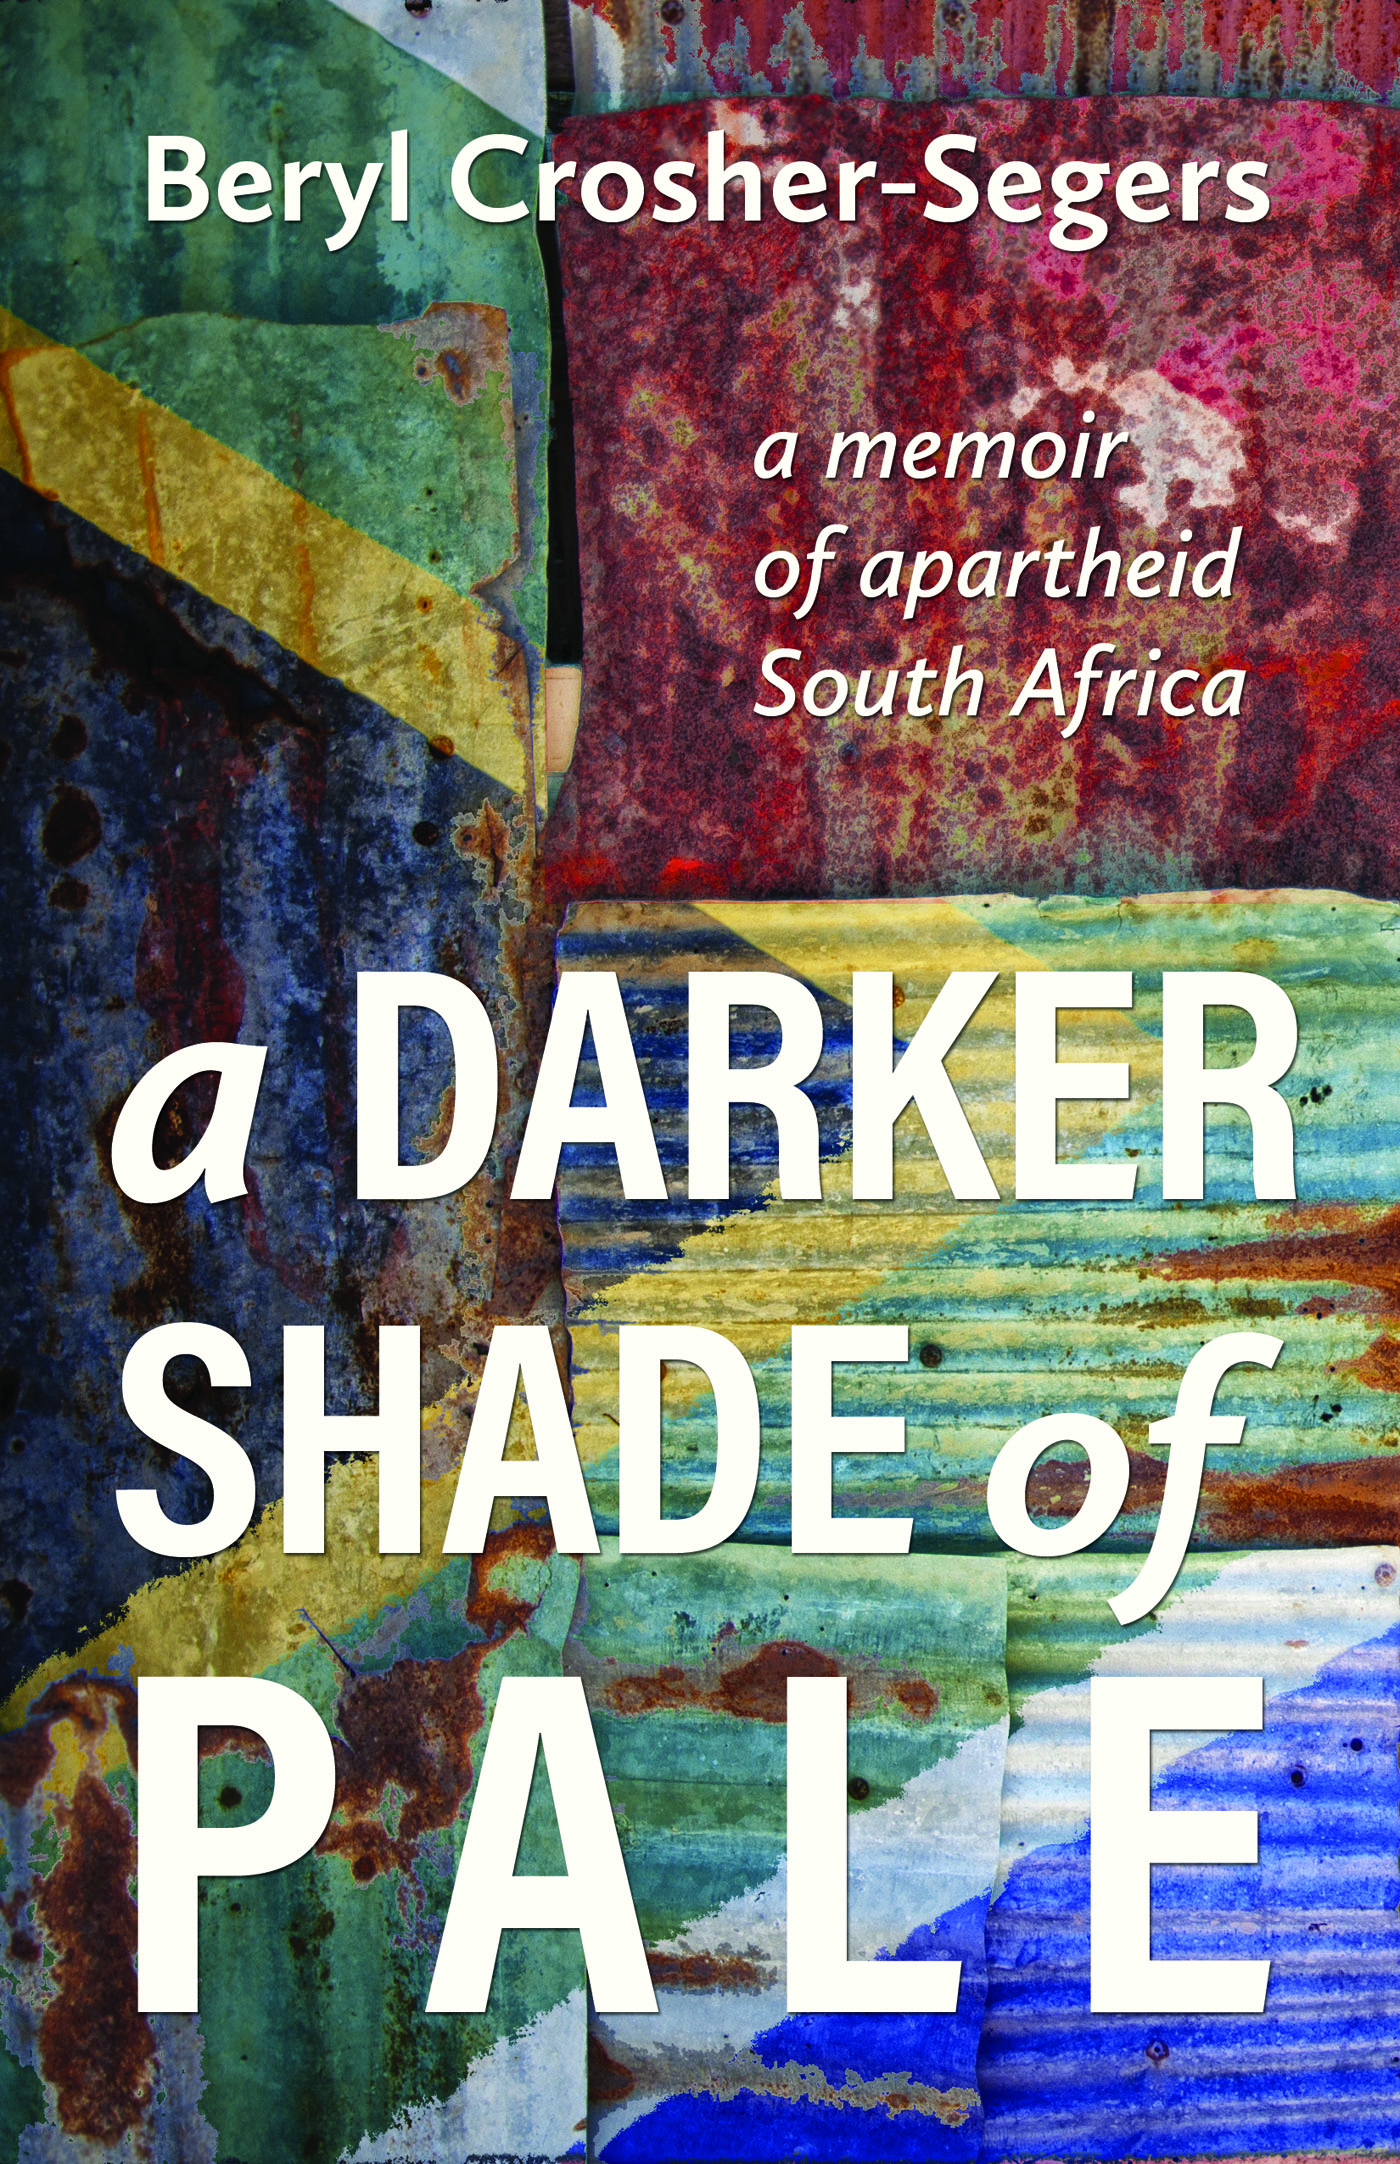 This image is the cover for the book A Darker Shade of Pale